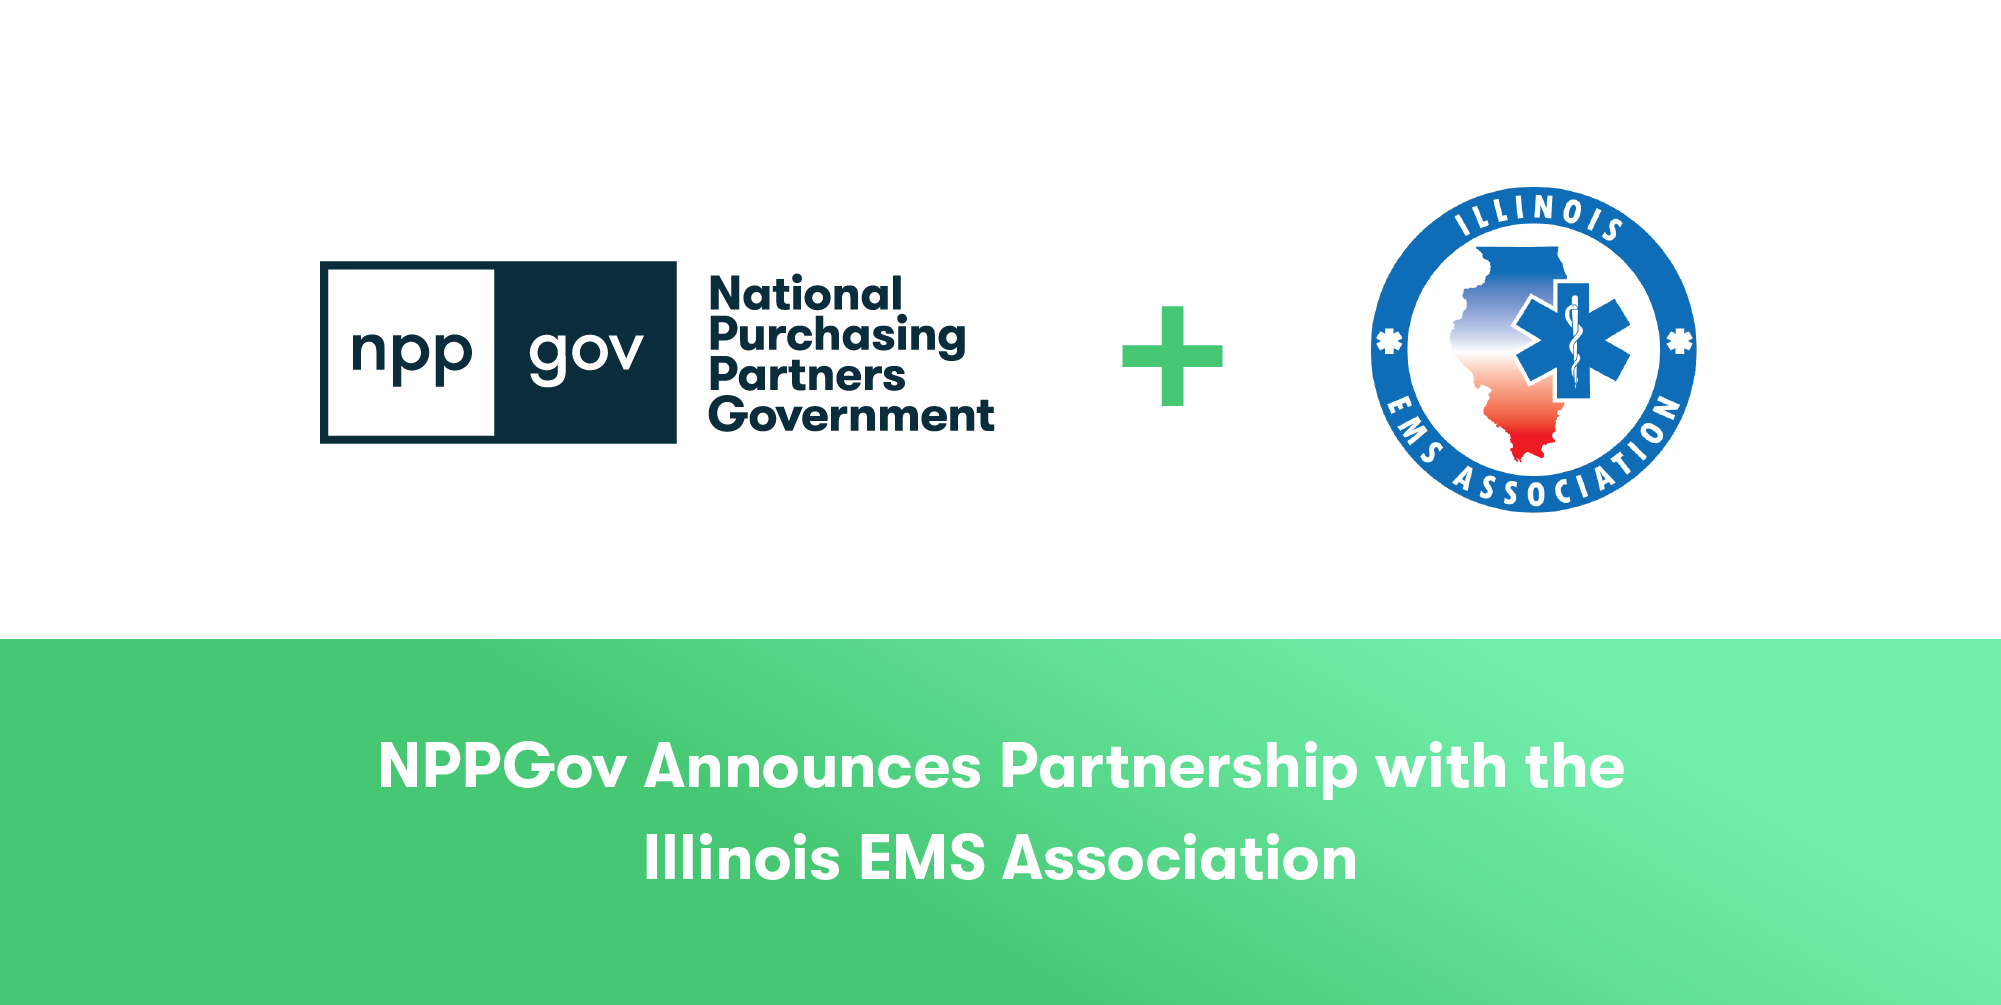 NPPGov Public Safety GPO Partners With The Illinois EMS Association